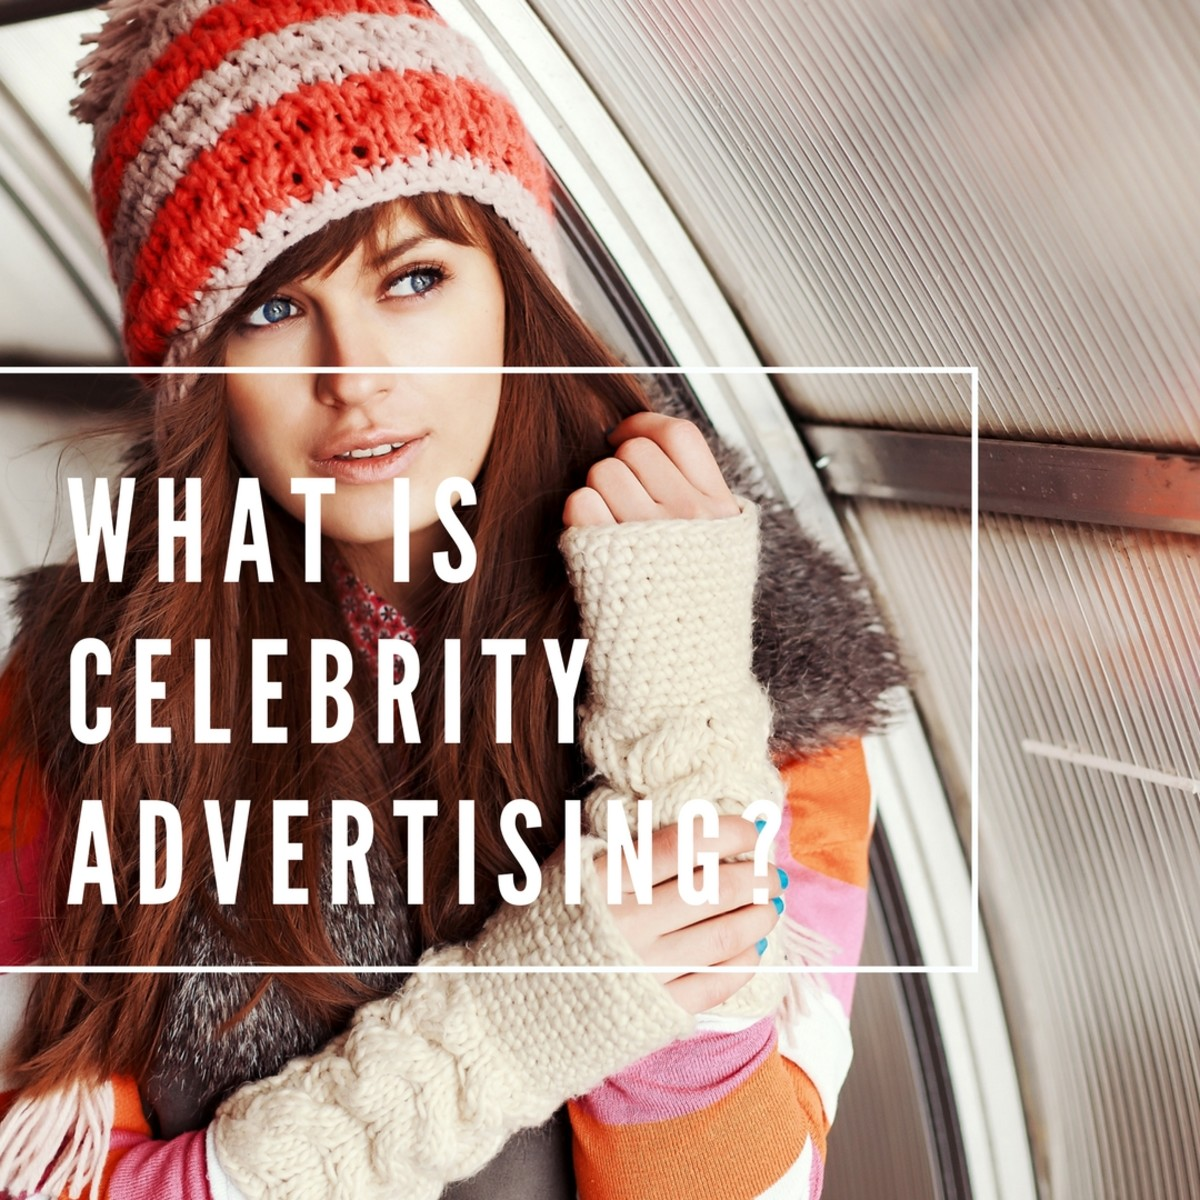 What is Celebrity Advertising?